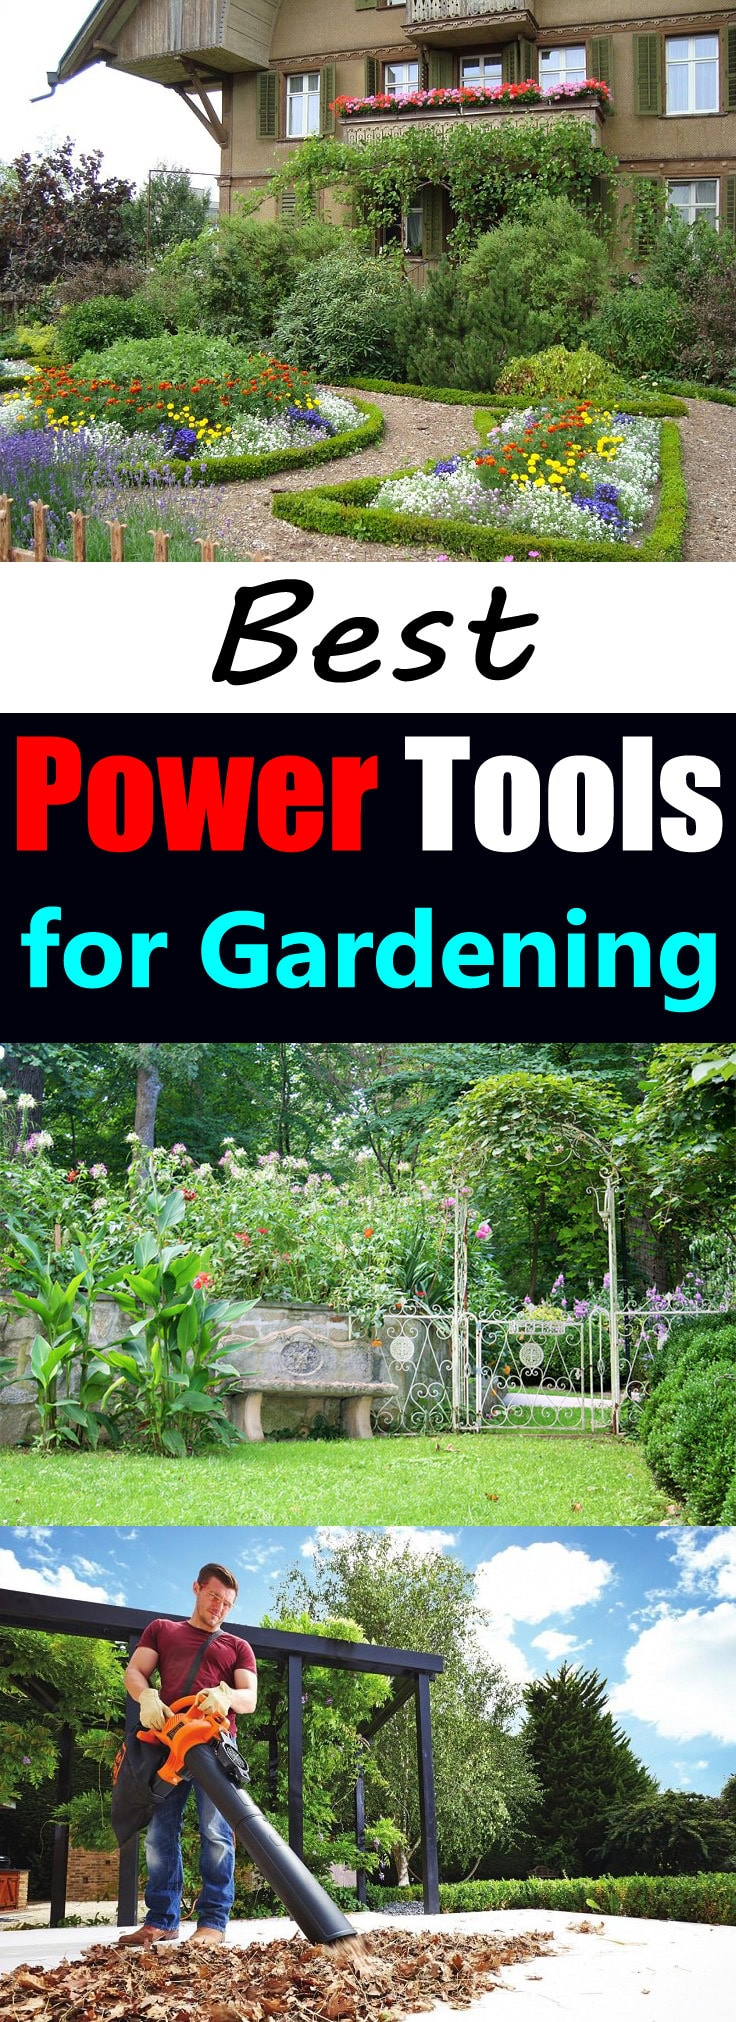 The use of tools and accessories can make the gardening more enjoyable and easy. And here are the best power tools for gardening you should know about.